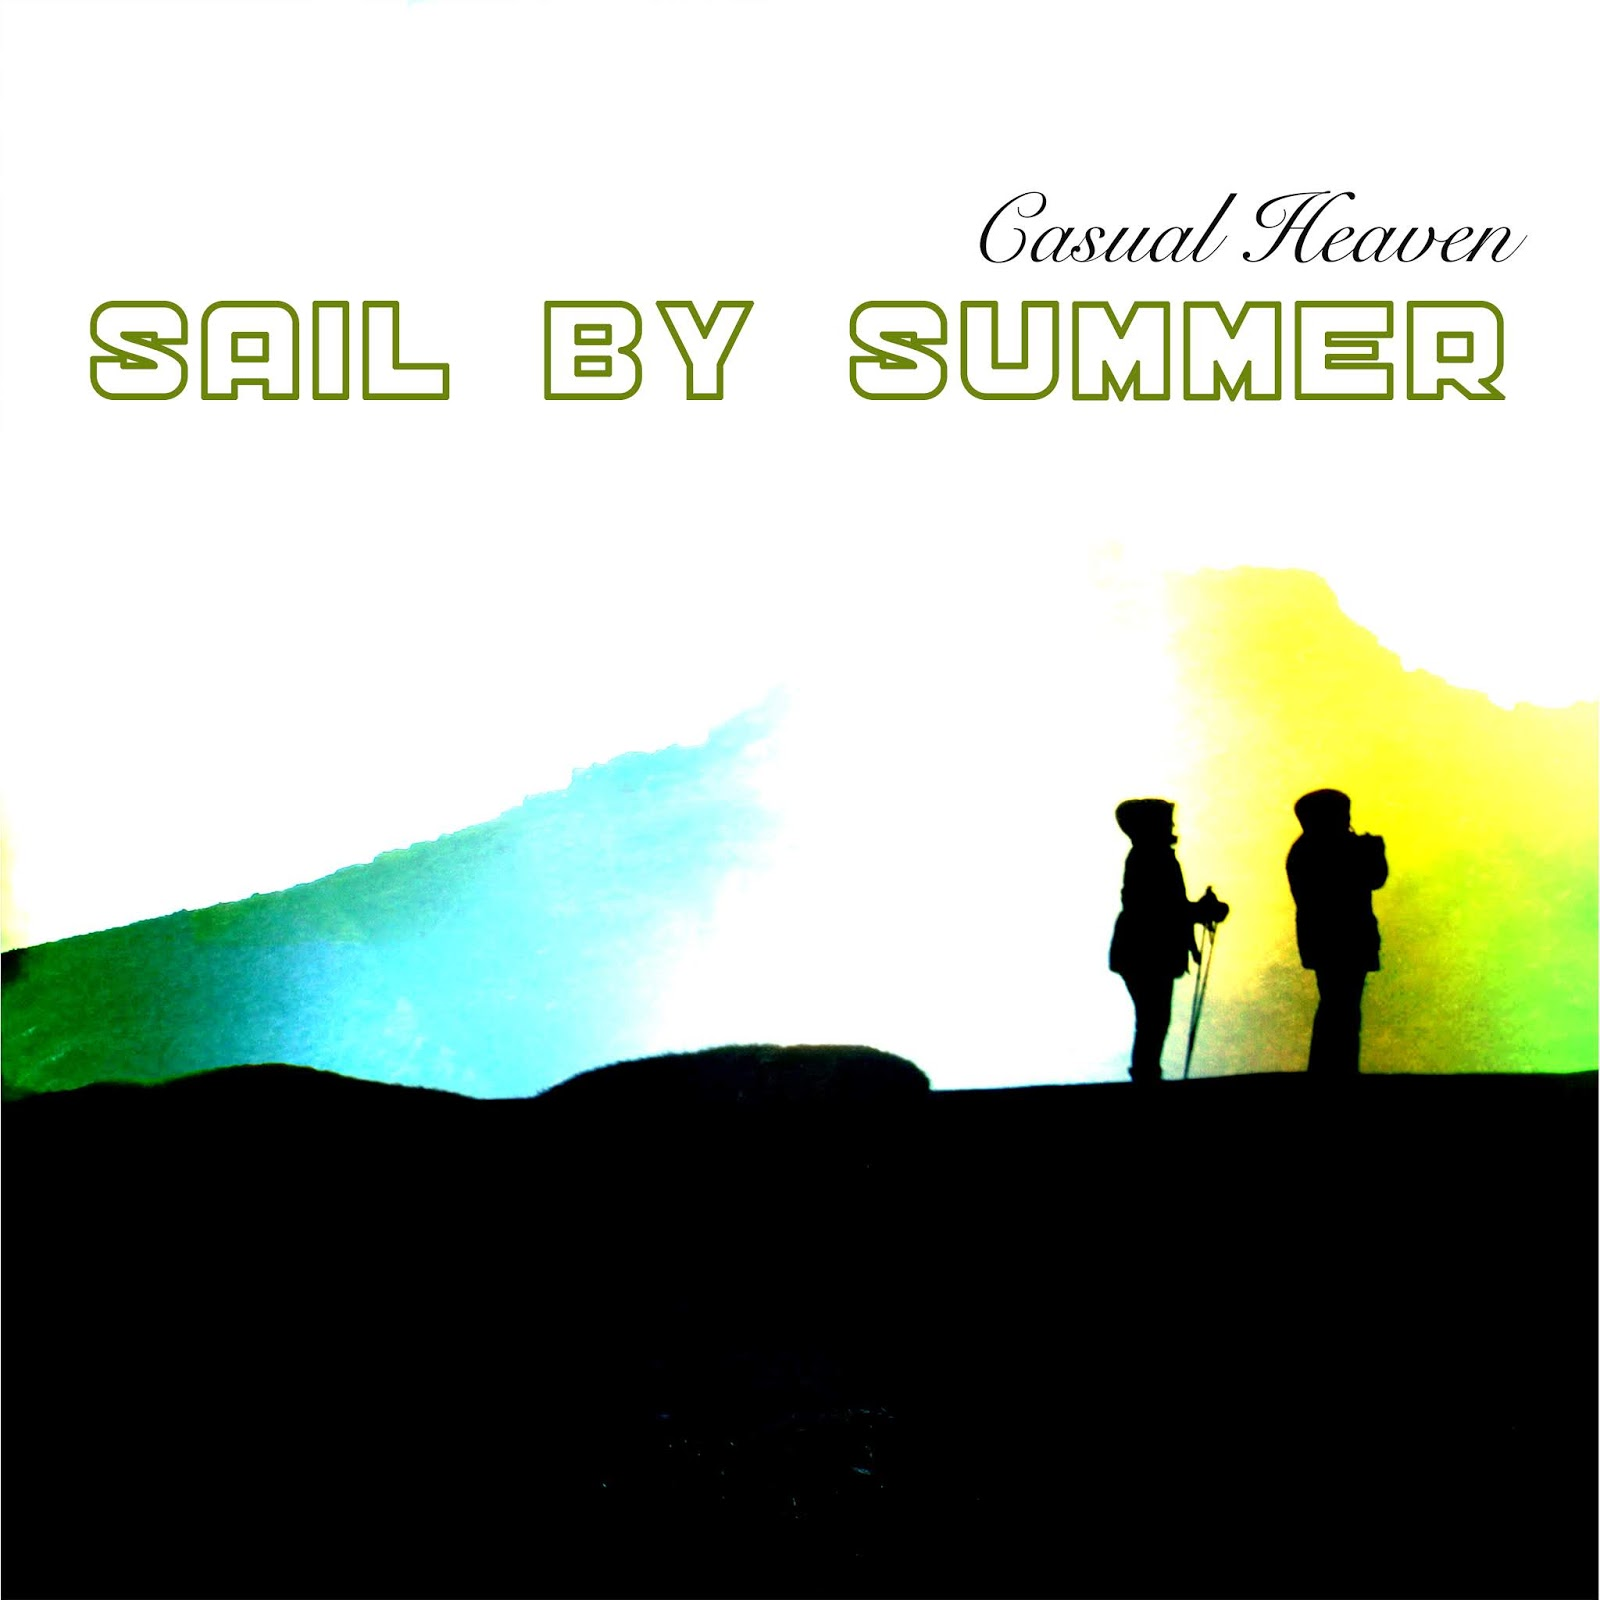 When You Motor Away   : Sail By Summer - Casual Heaven